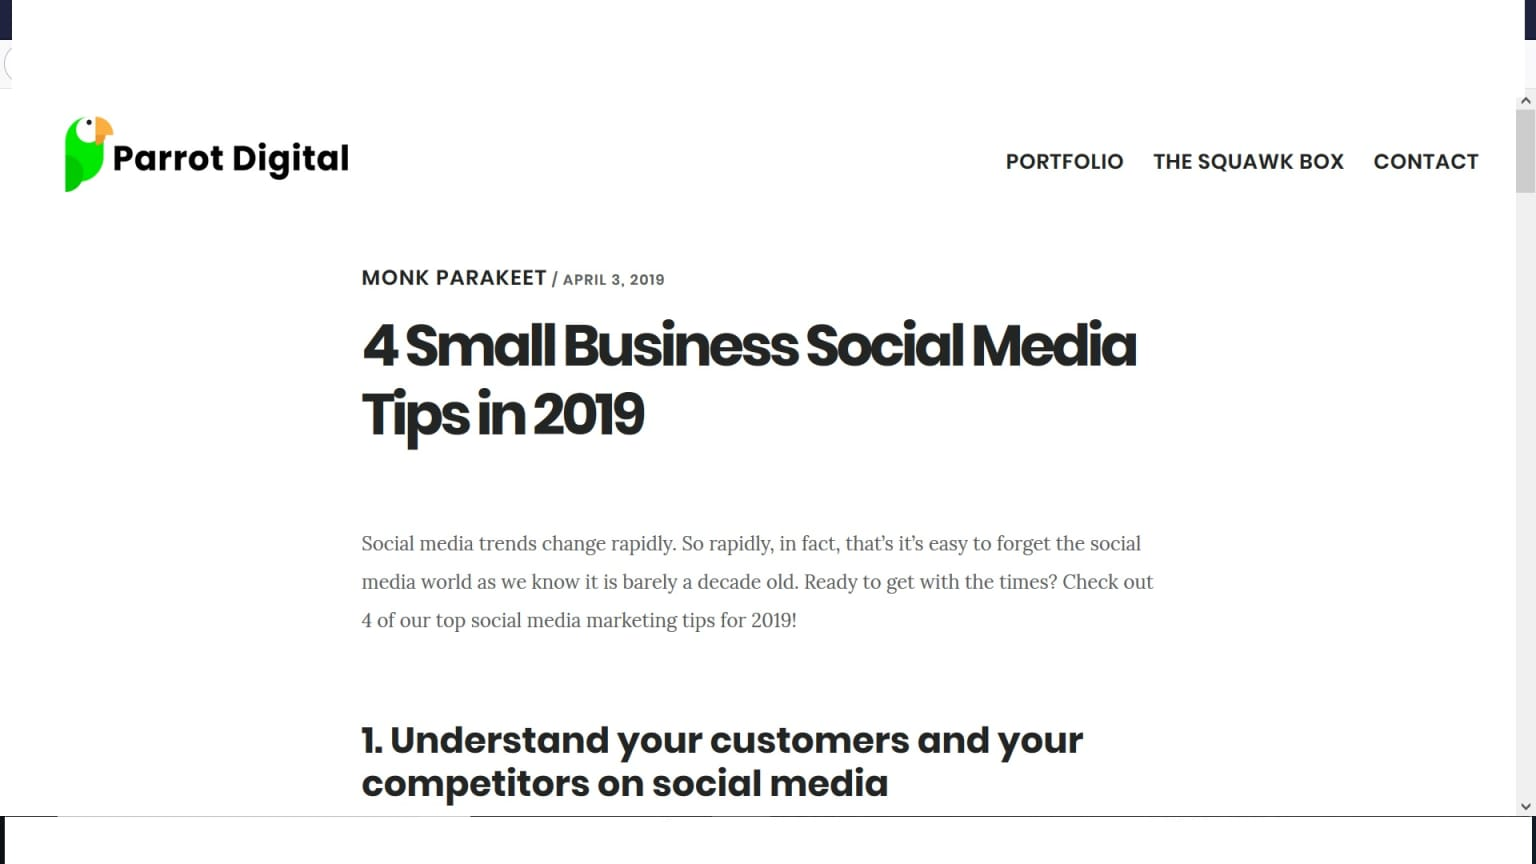 Small business social media tips copy for Parrot DM